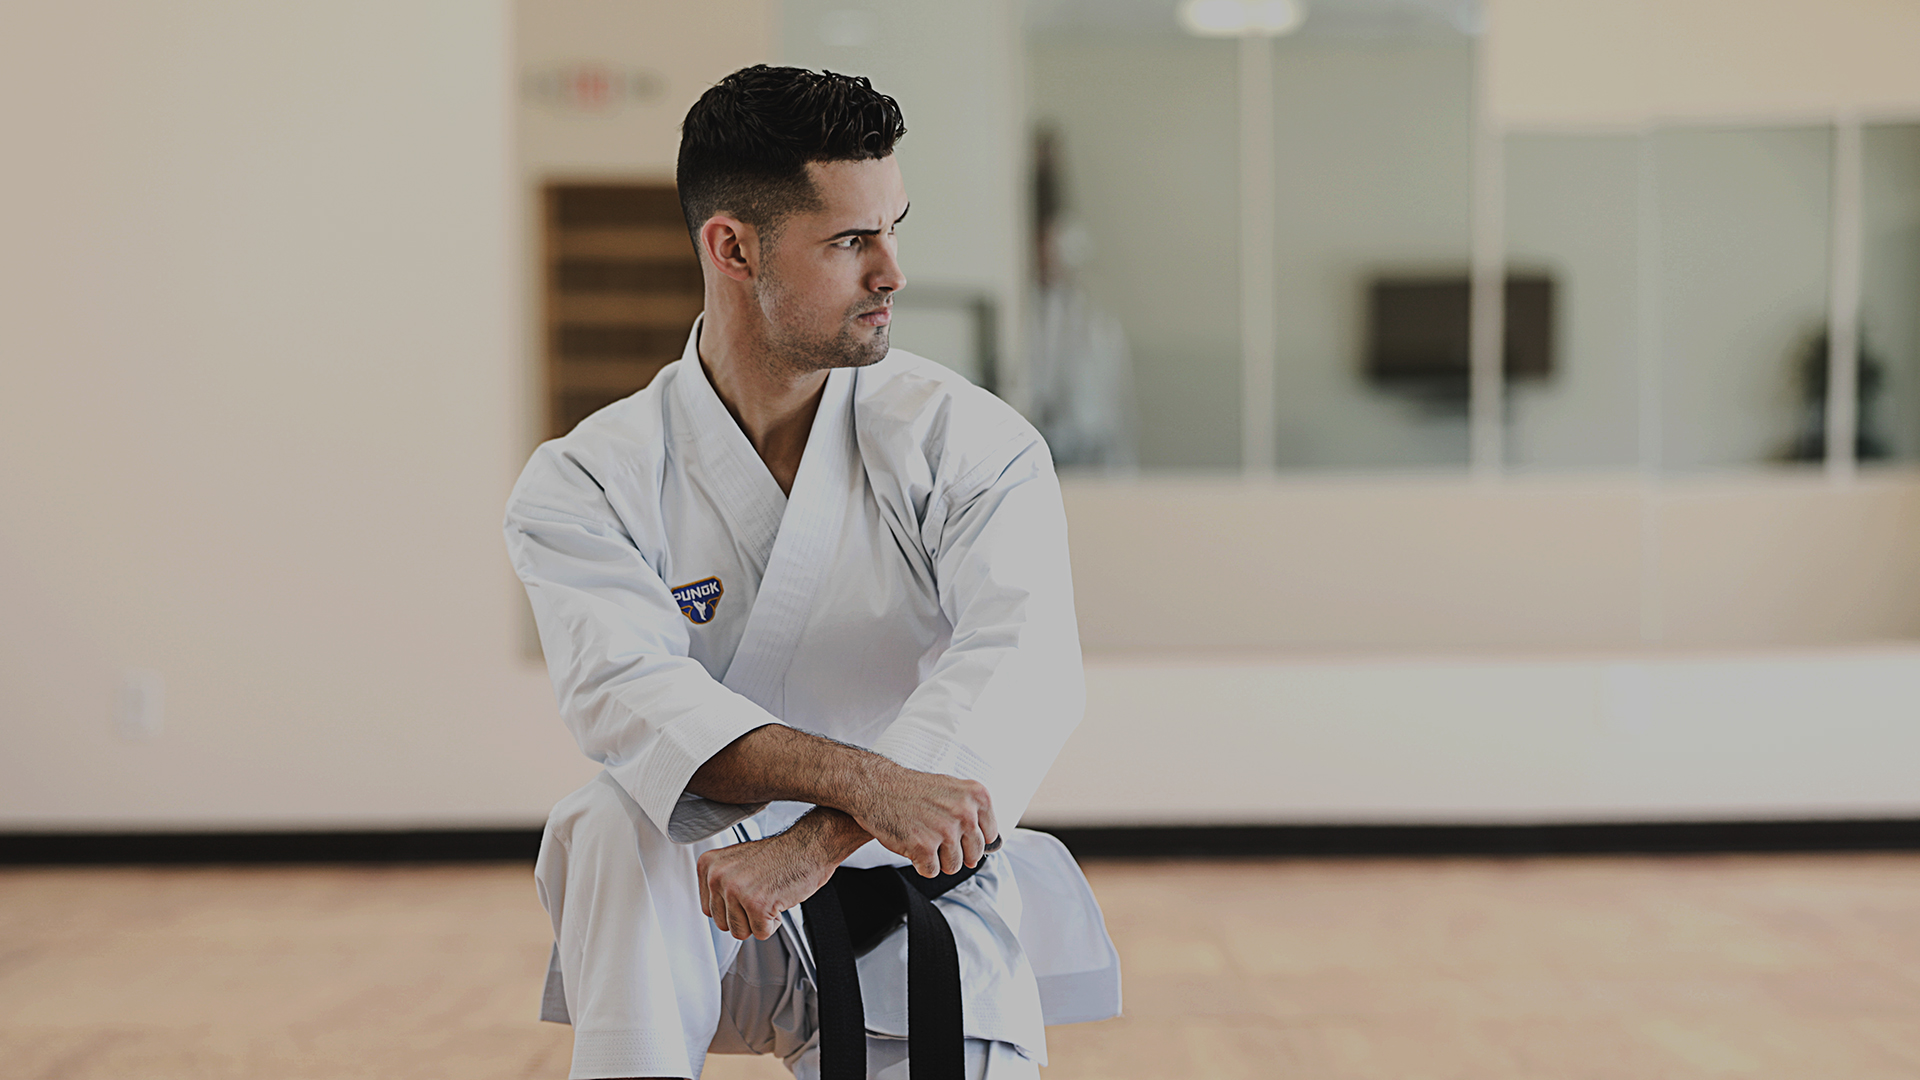 Century Martial Arts Supply | Martial Arts Uniforms & Gear